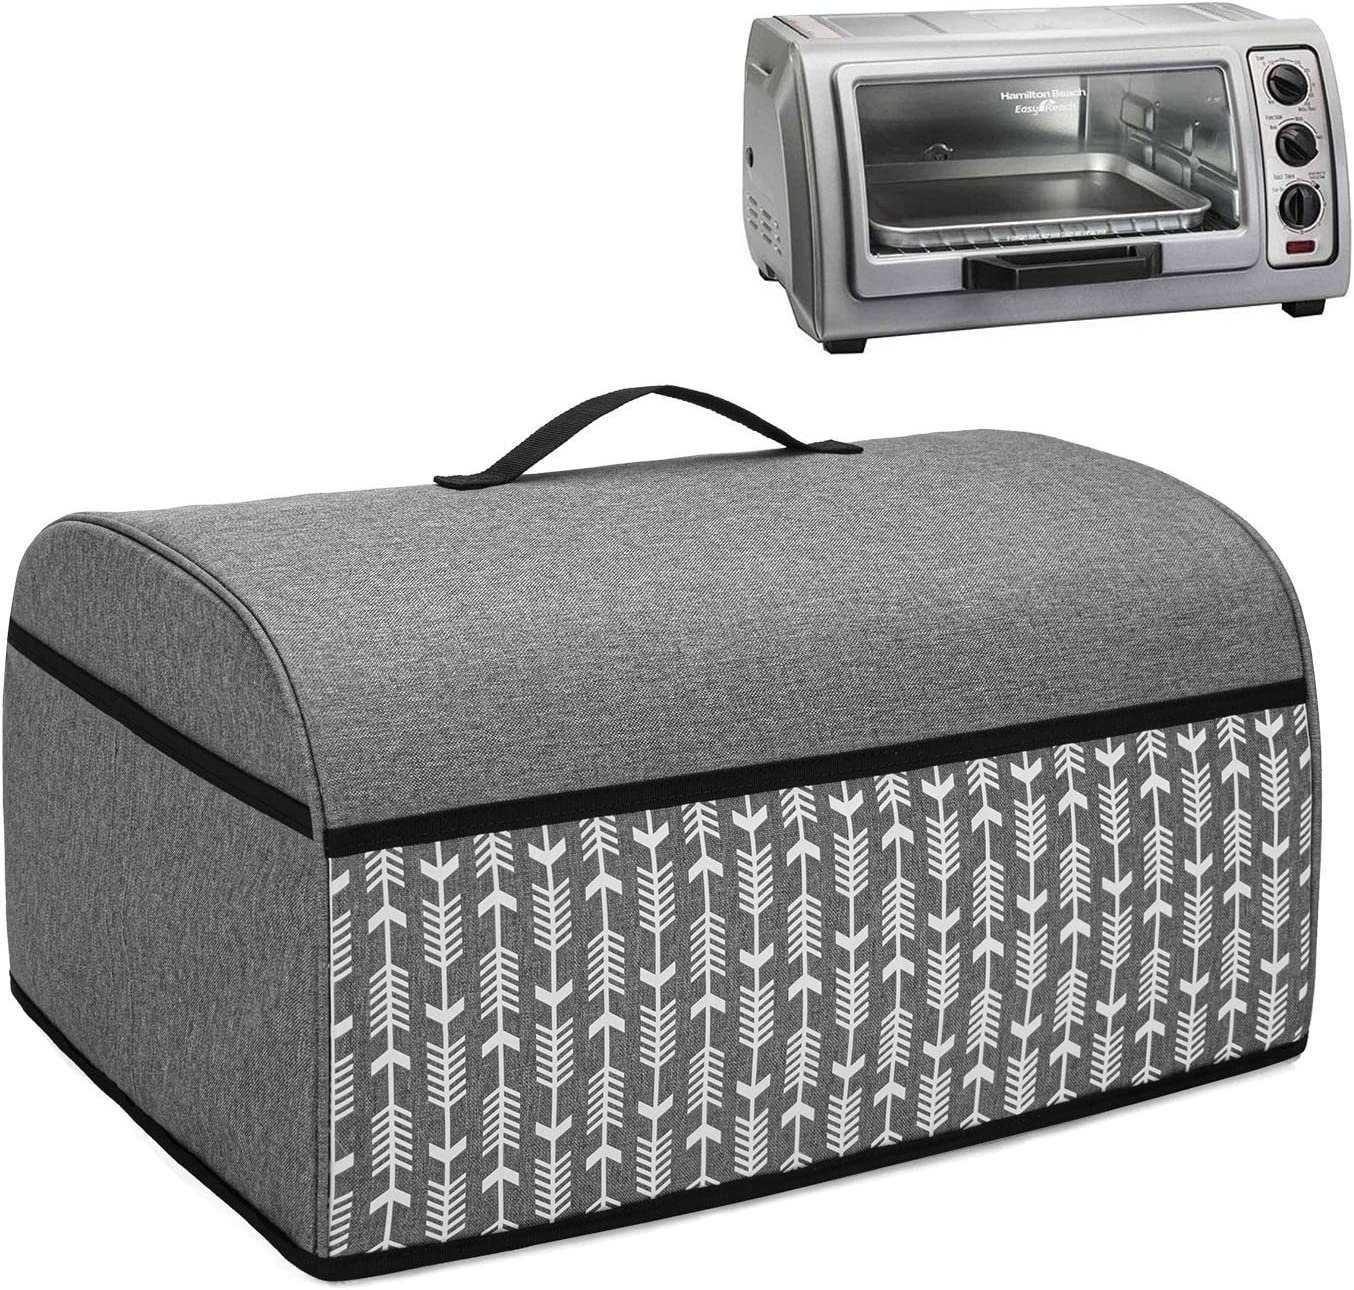 Yarwo Toaster Oven Cover Compatible with Hamilton Beach Countertop Toaster Oven 6 Slice, Heavy Duty Dust Cover with Pockets and Top Handle, Gray with Arrow (COVER ONLY)